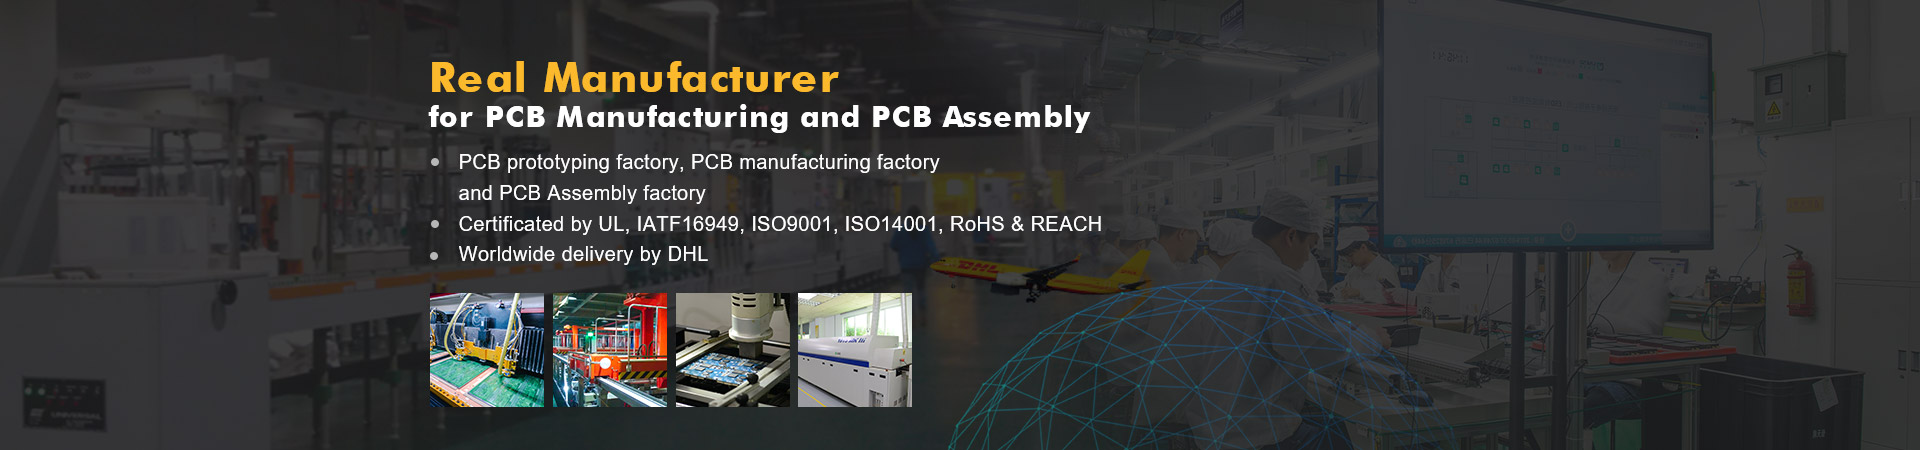 Real Manufacturer for PCB manufacturing and PCB Assembly